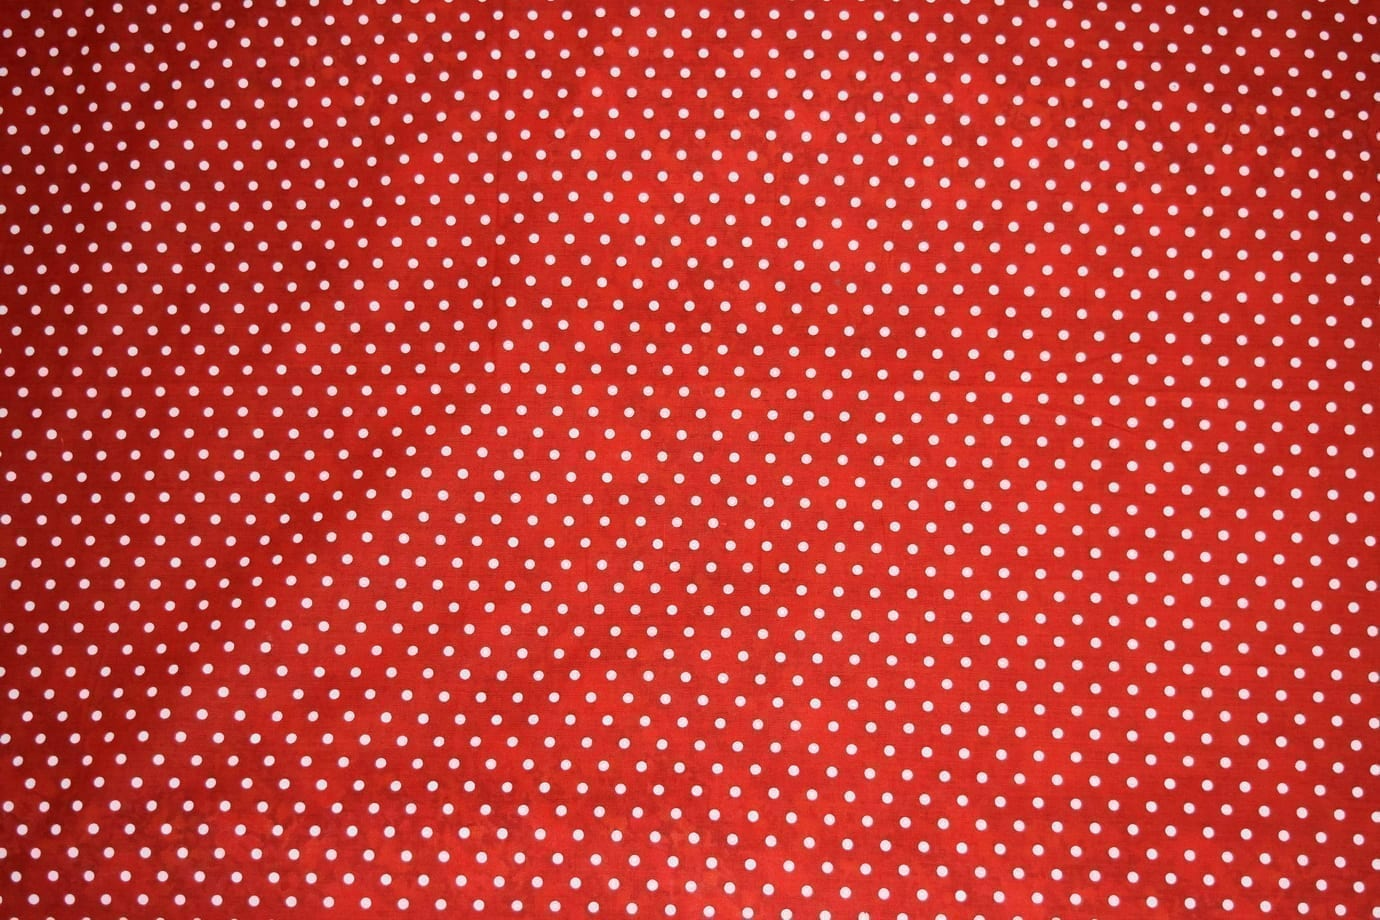 Small Polka Dots Red COTTON PRINTED FABRIC PC307 2